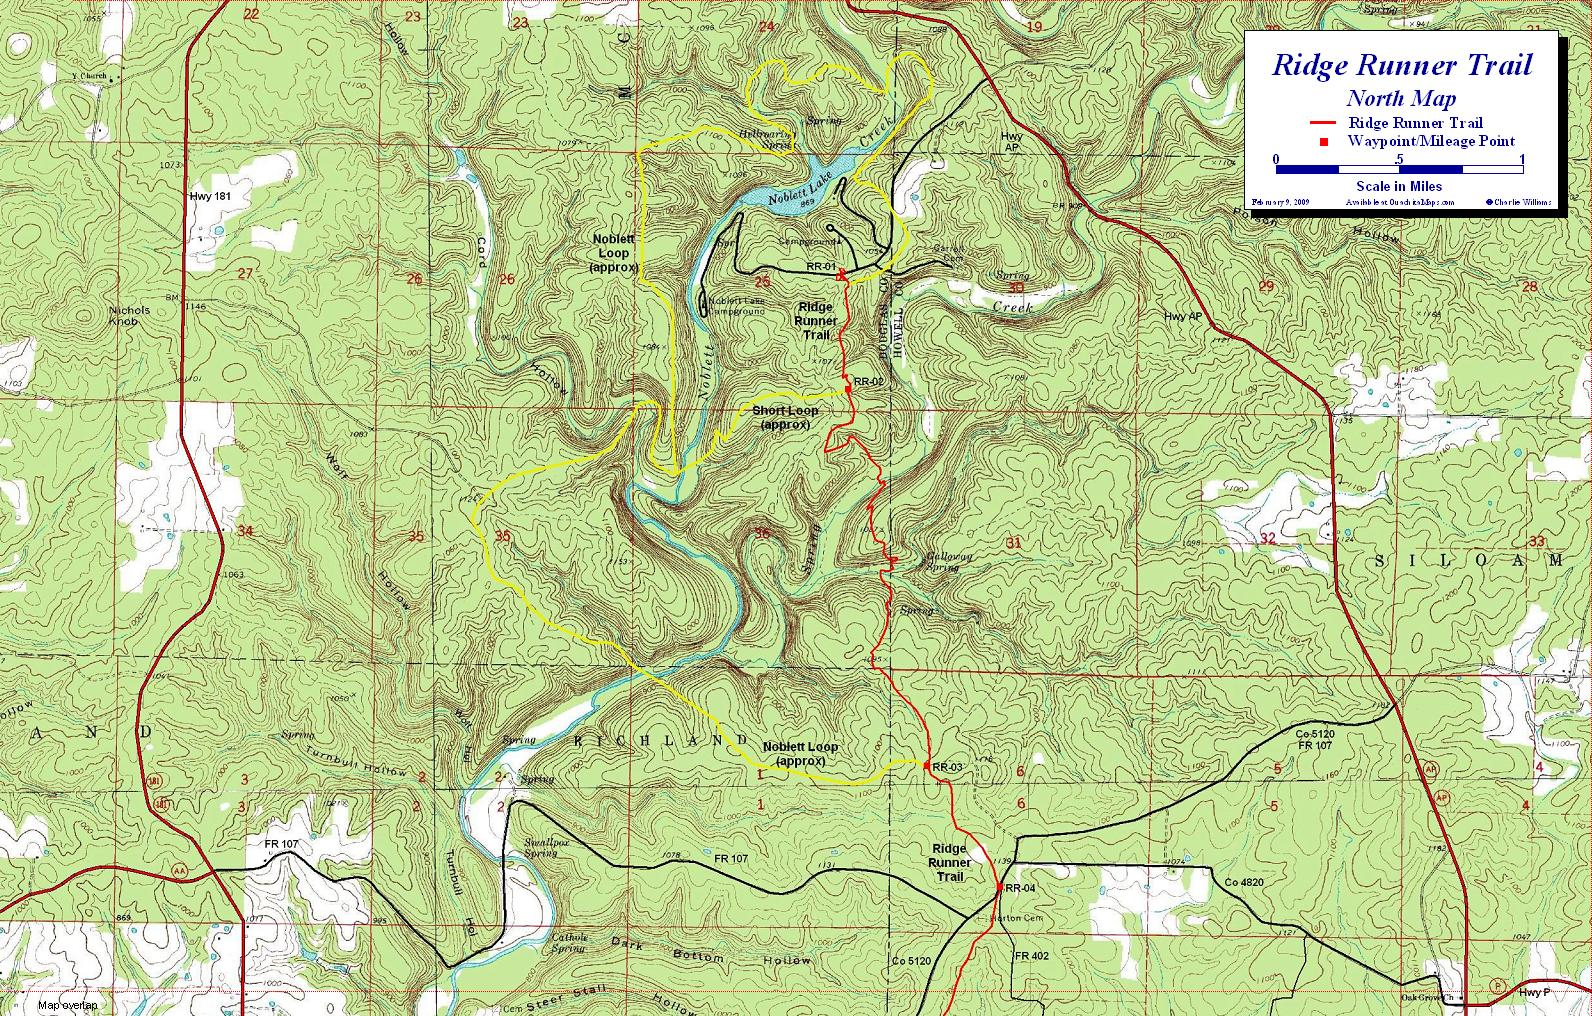 Ridge Runner Trail Mark Twain National Forest Missouri - Missouri lakes map